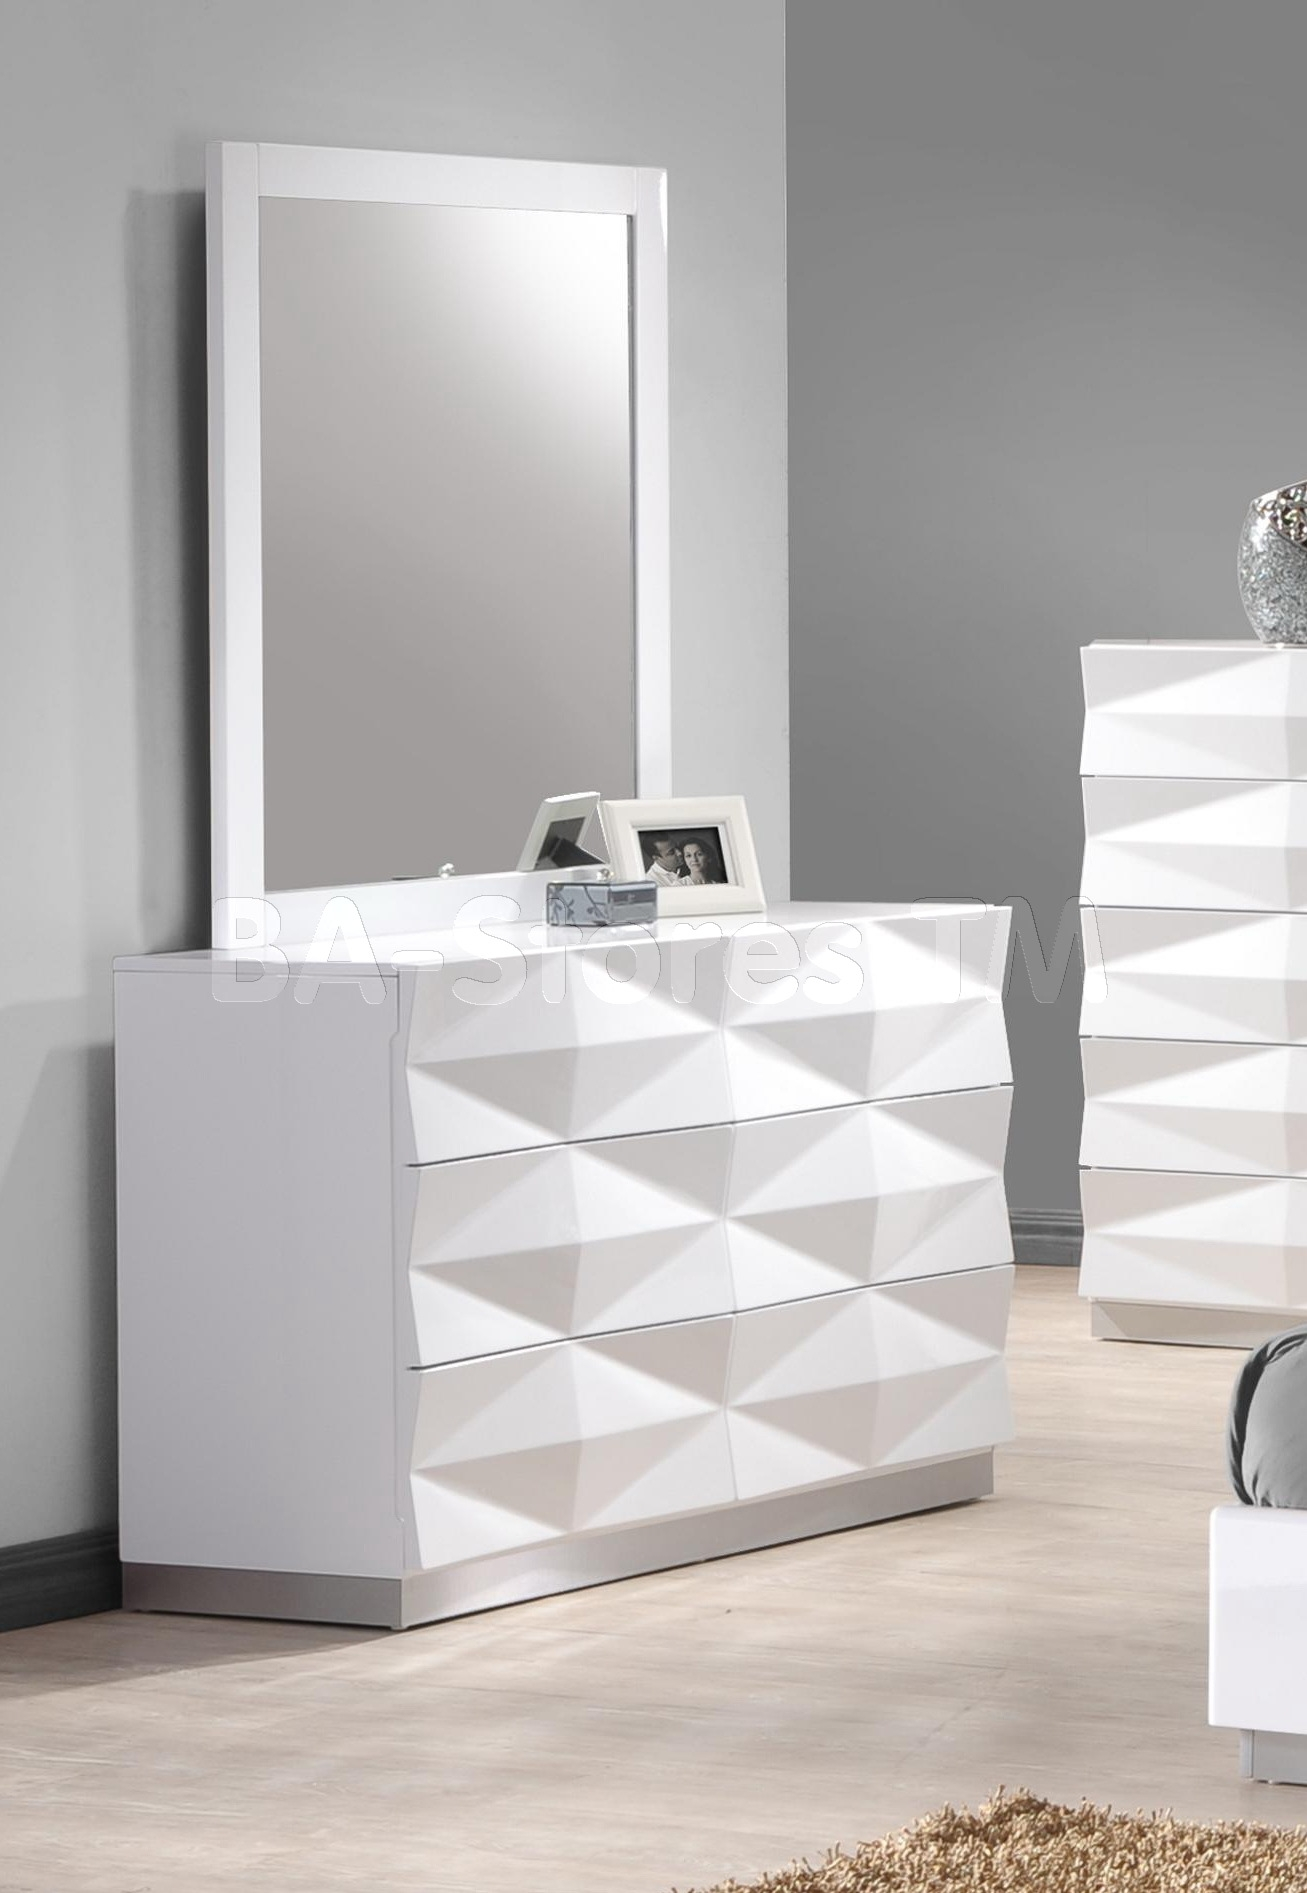 White Contemporary Dresser Throughout Contemporary White Mirror (Image 13 of 15)